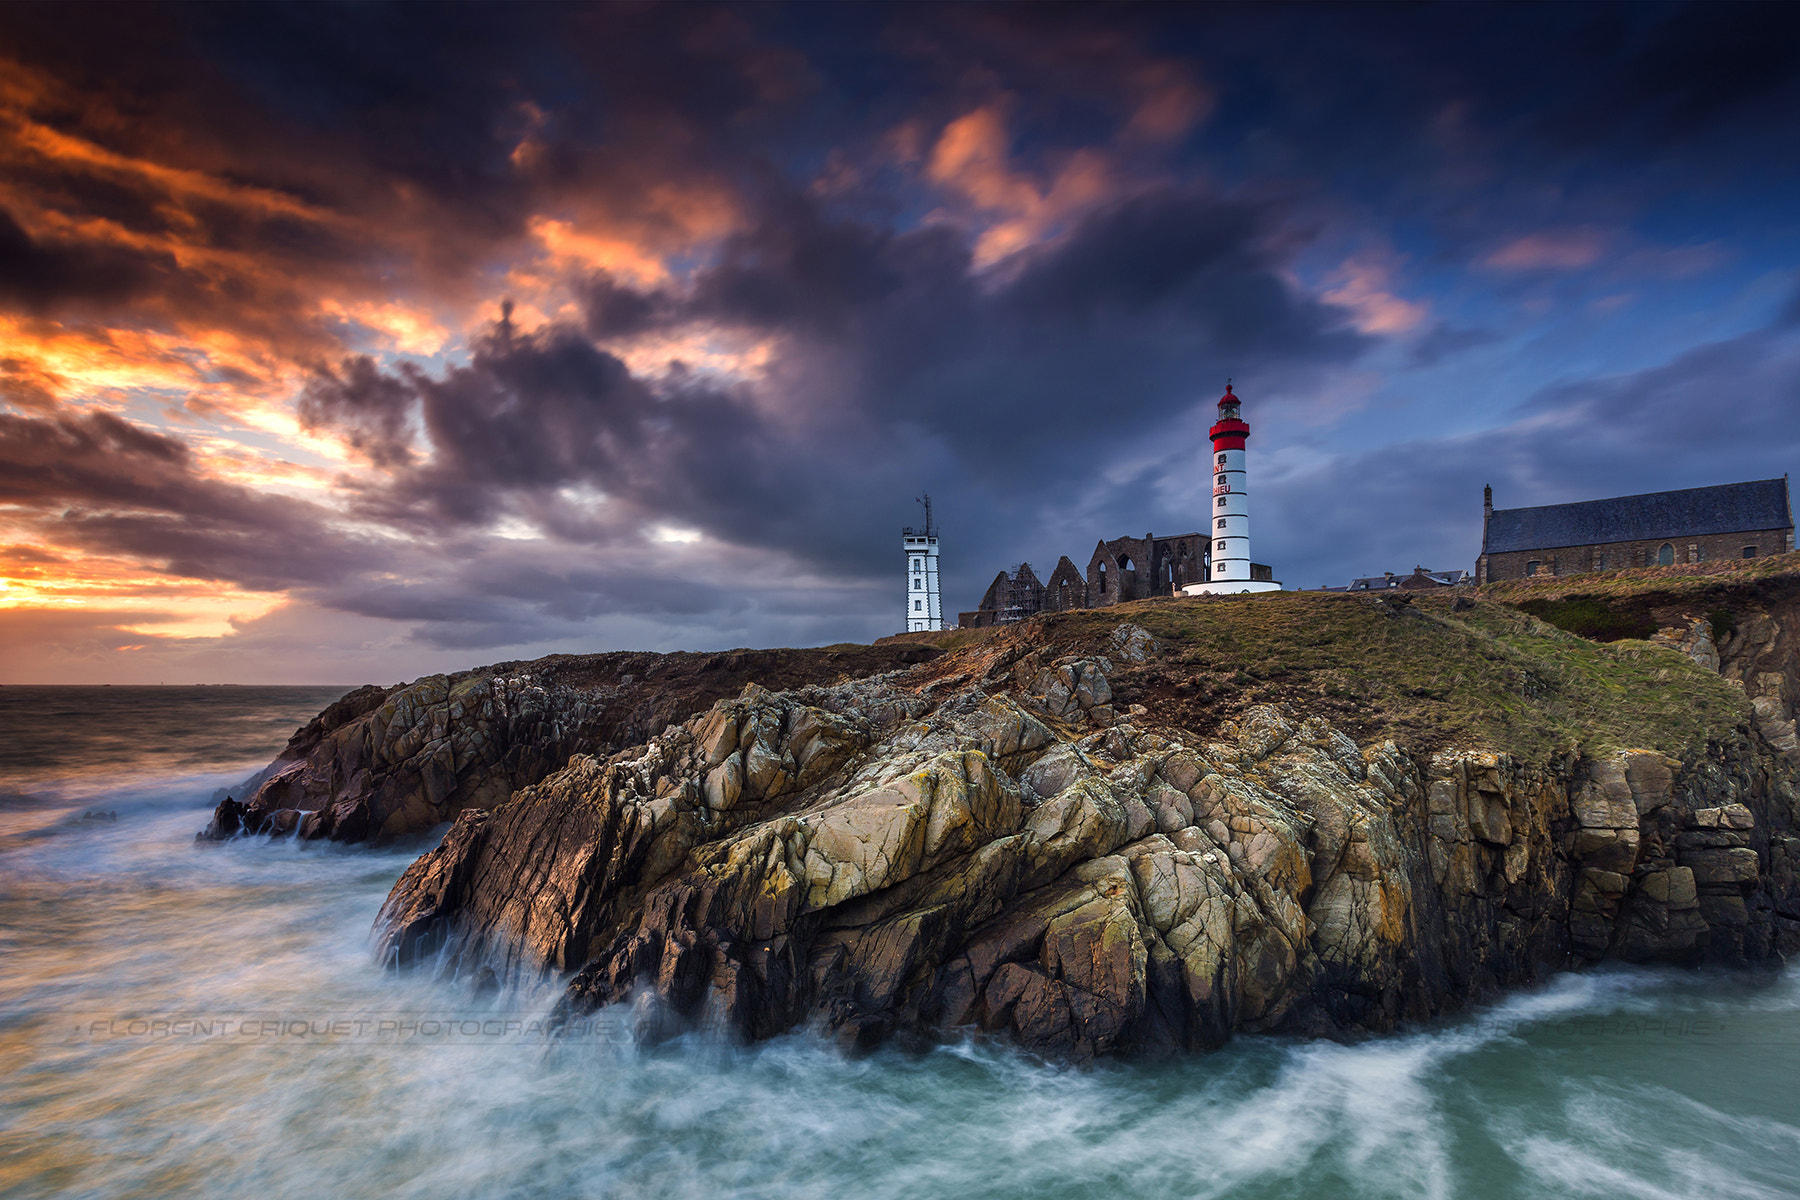 Photograph Phare de la pointe Saint Mathieu by Florent Criquet on 500px